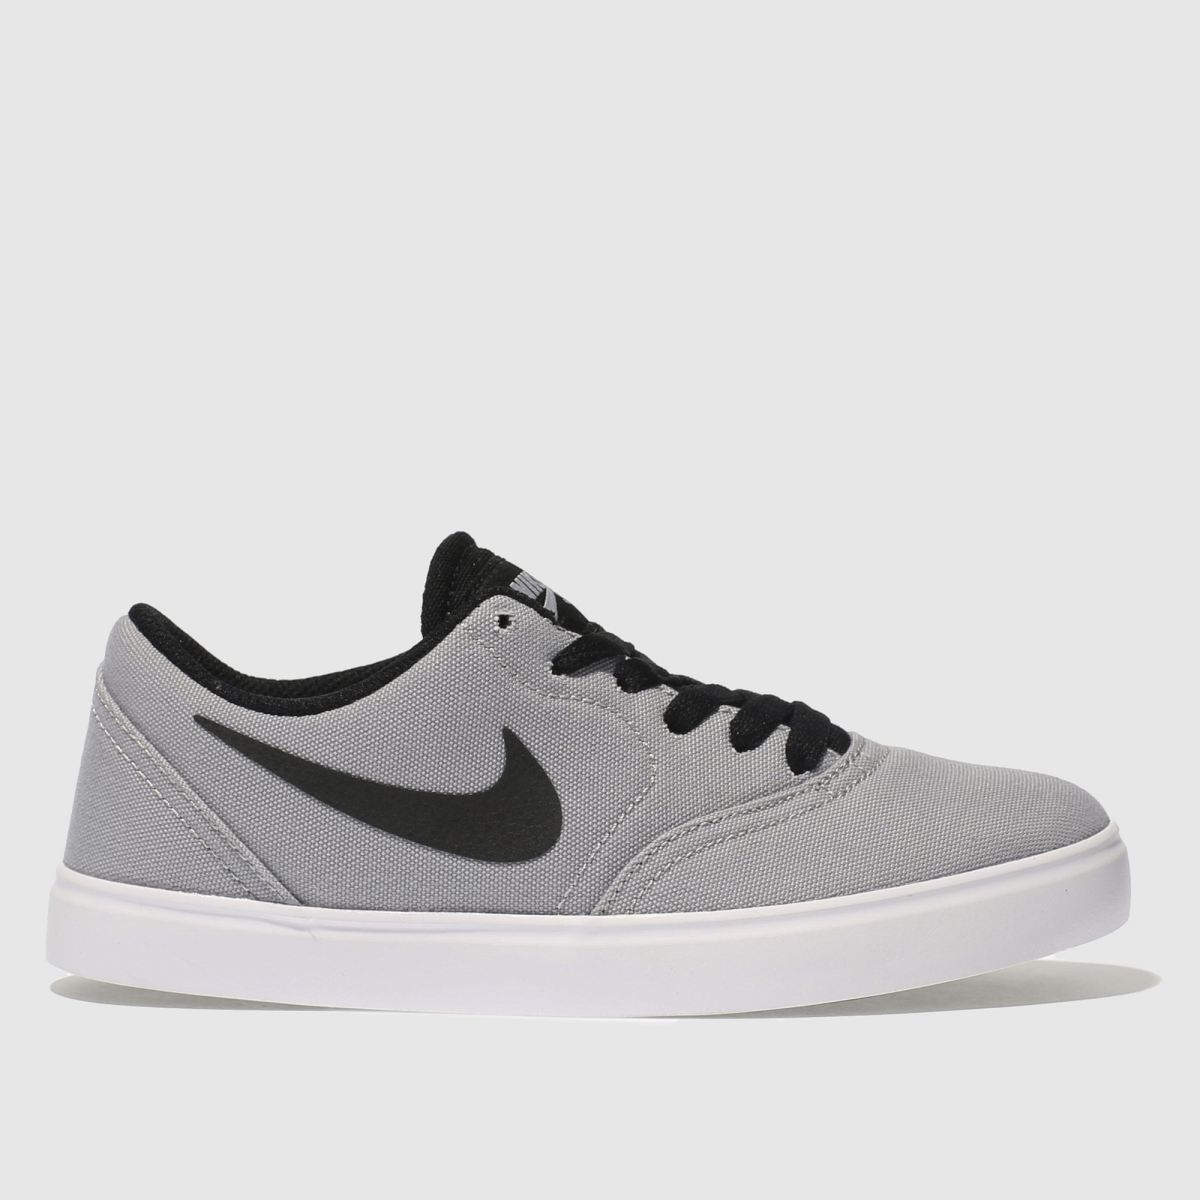 Nike Sb Light Grey Check Canvas Unisex Youth Youth